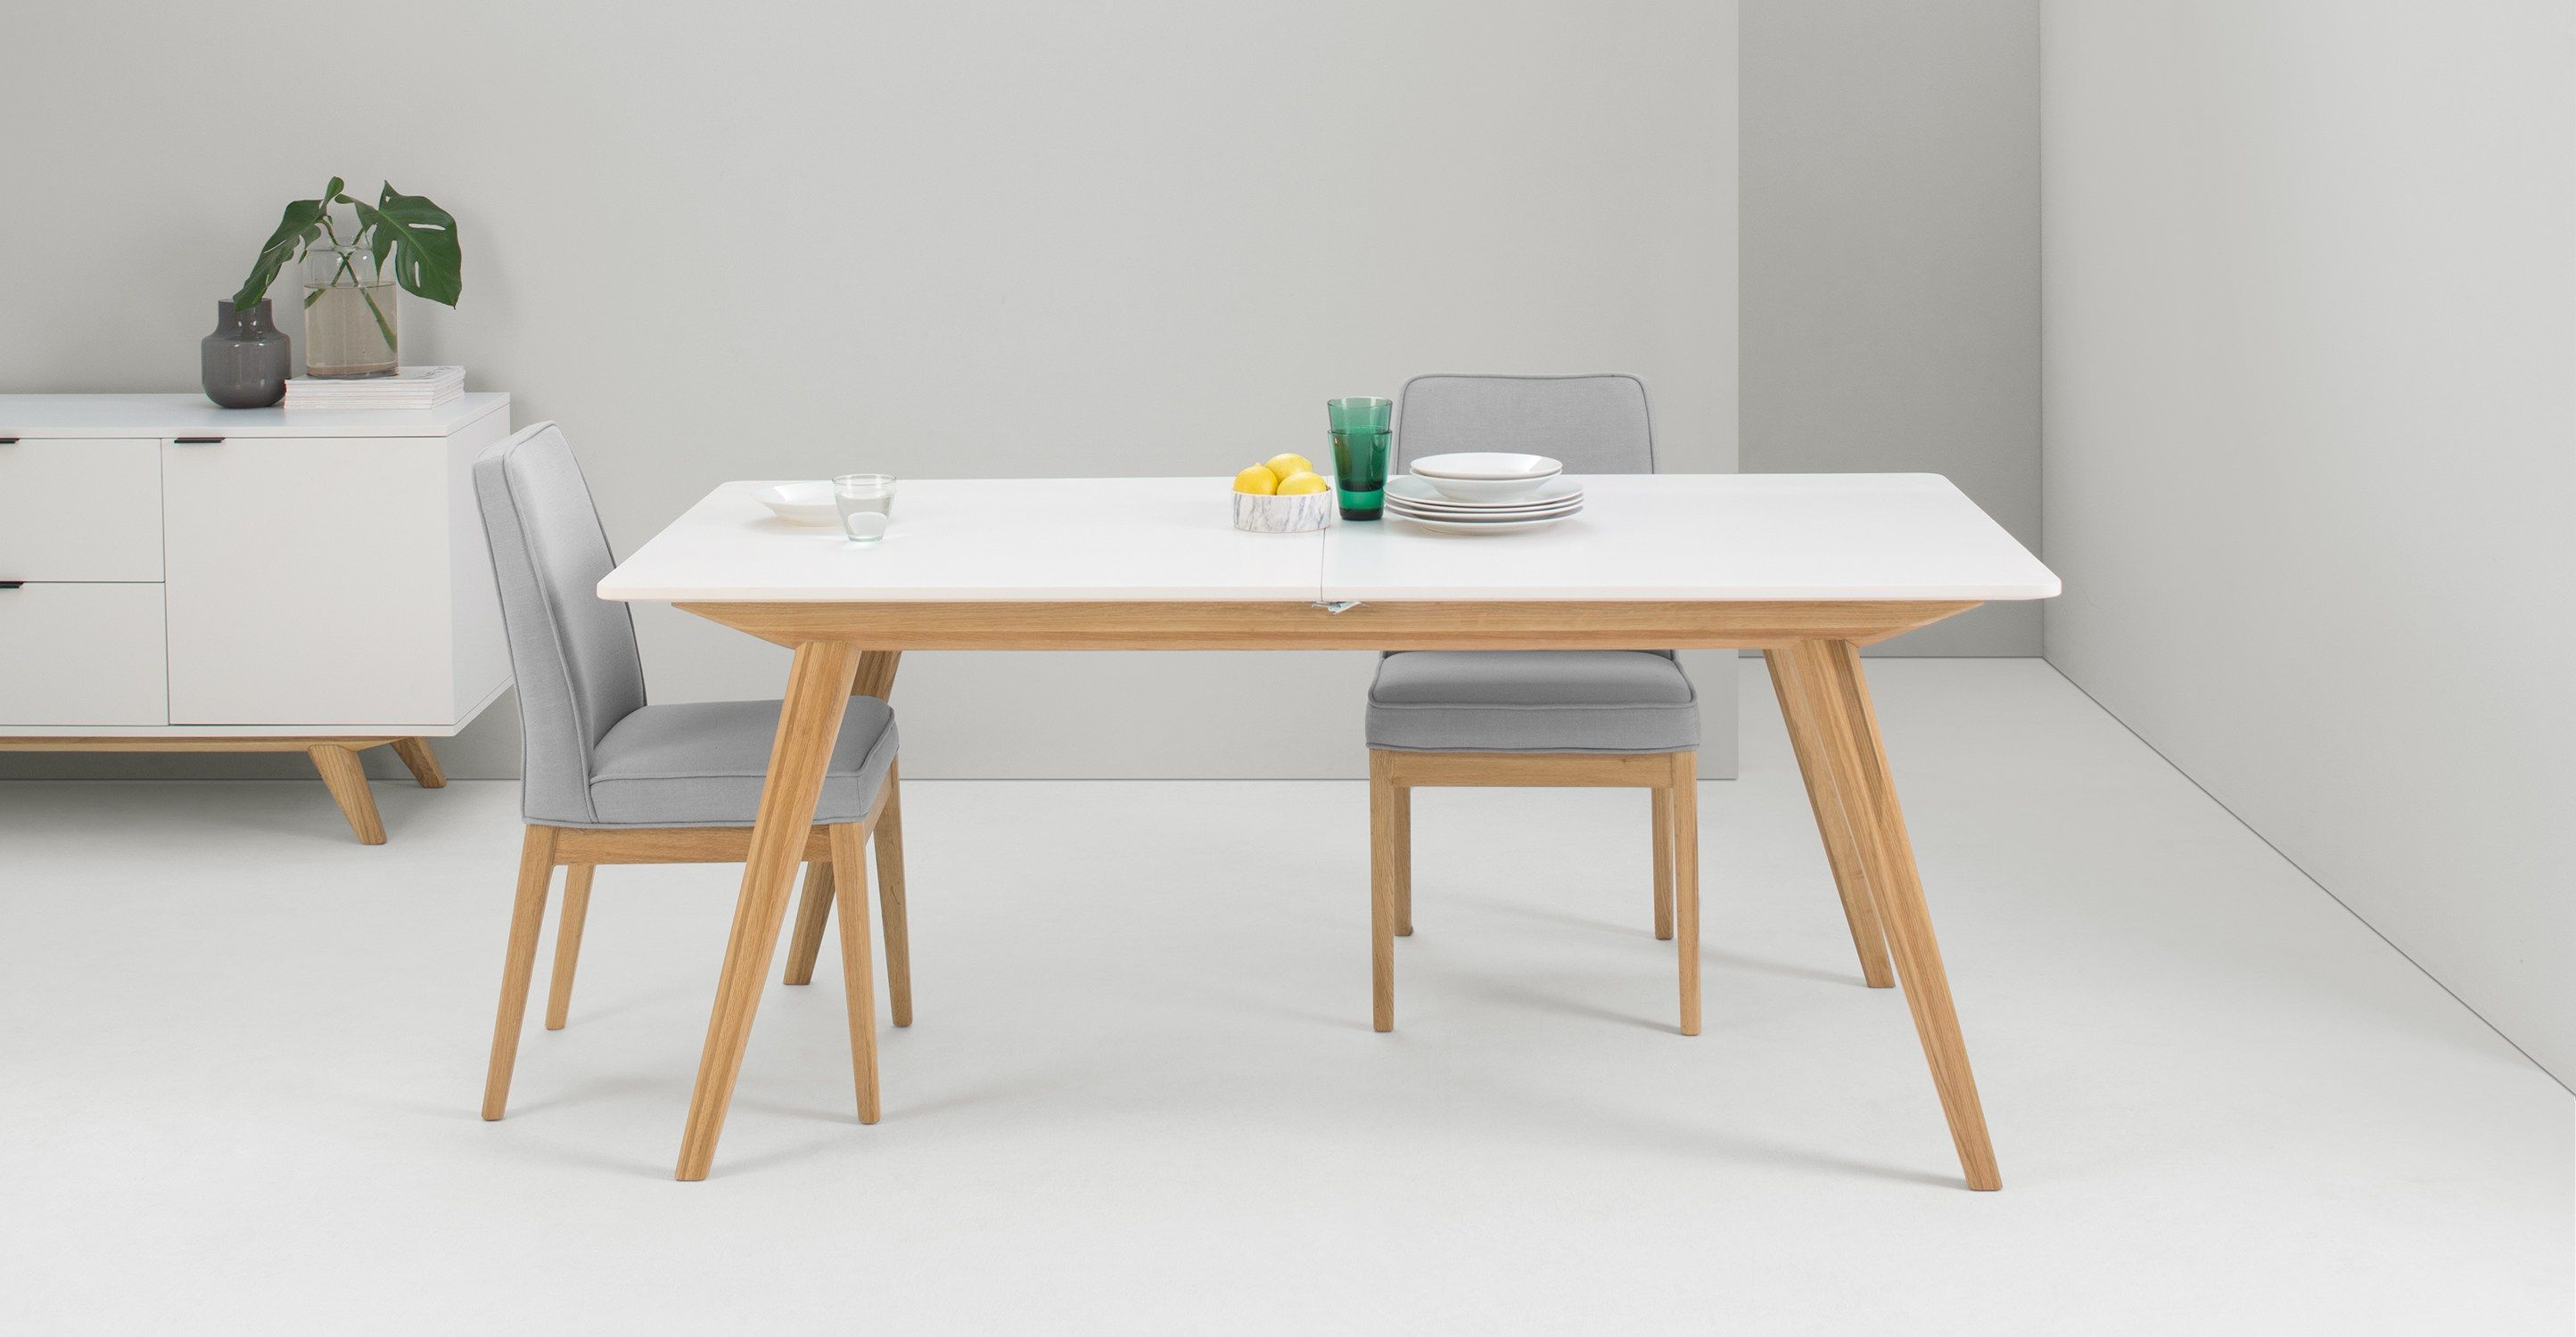 Calligaris | Levante Extending Dining Table | Available In A Number Of  Different Finishes | Two Sizes To Choose From. | Pinterest | Dining, Table  Seating ...